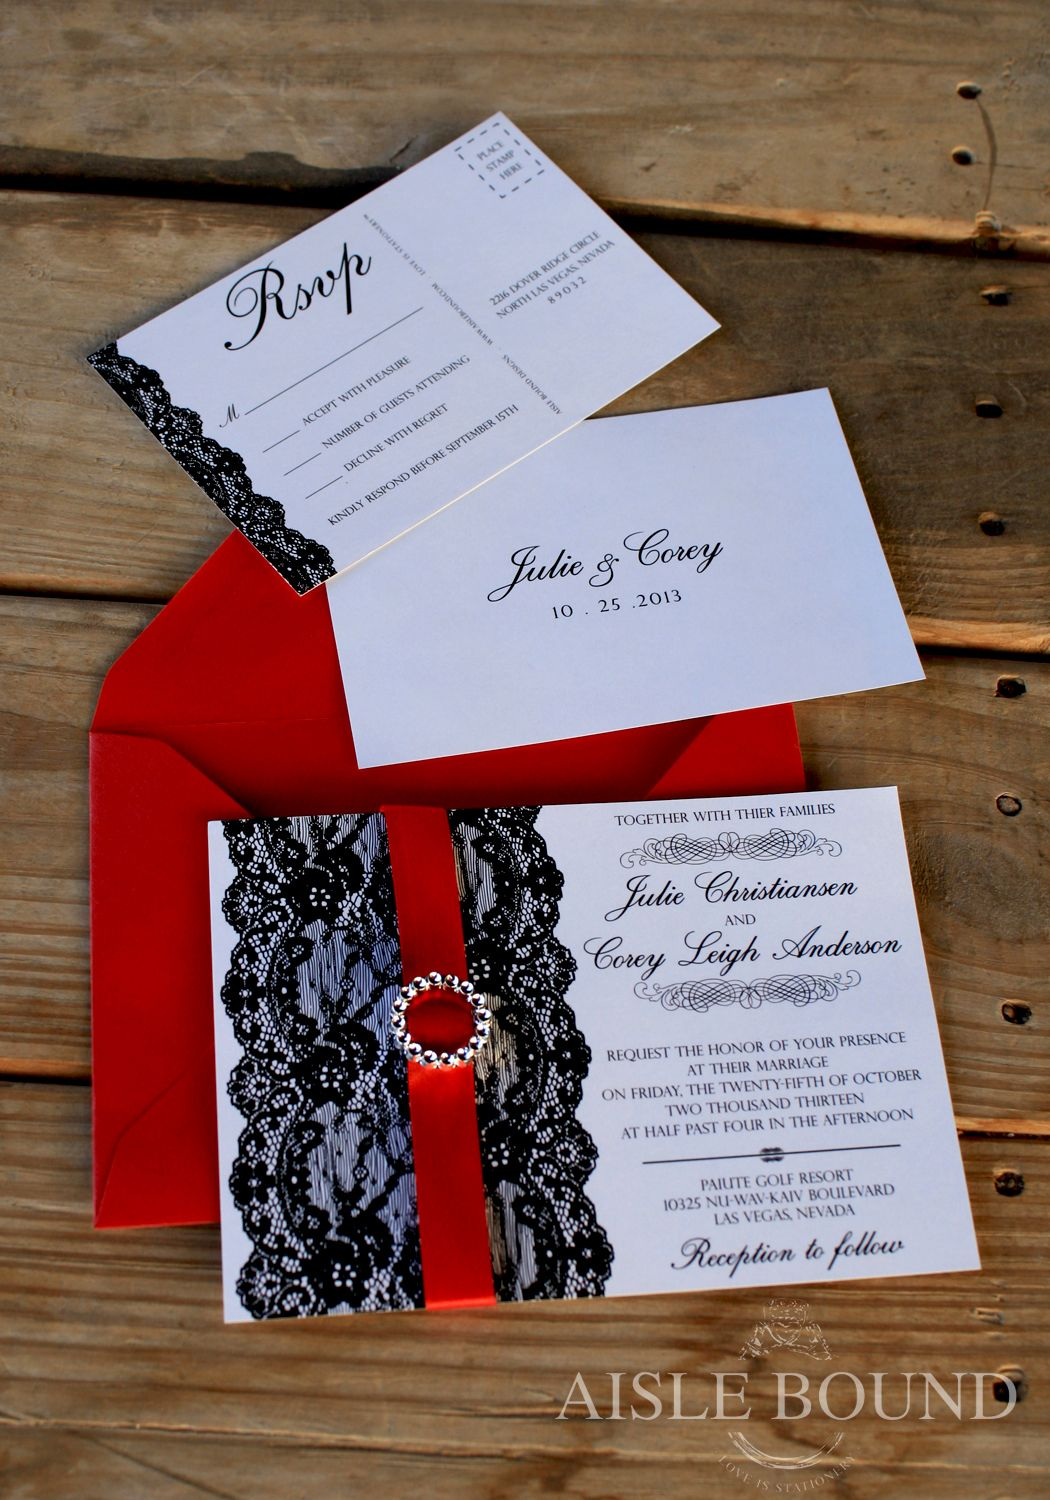 vintage hollywood wedding invitation metallic red envelope black lace postcard rsvp